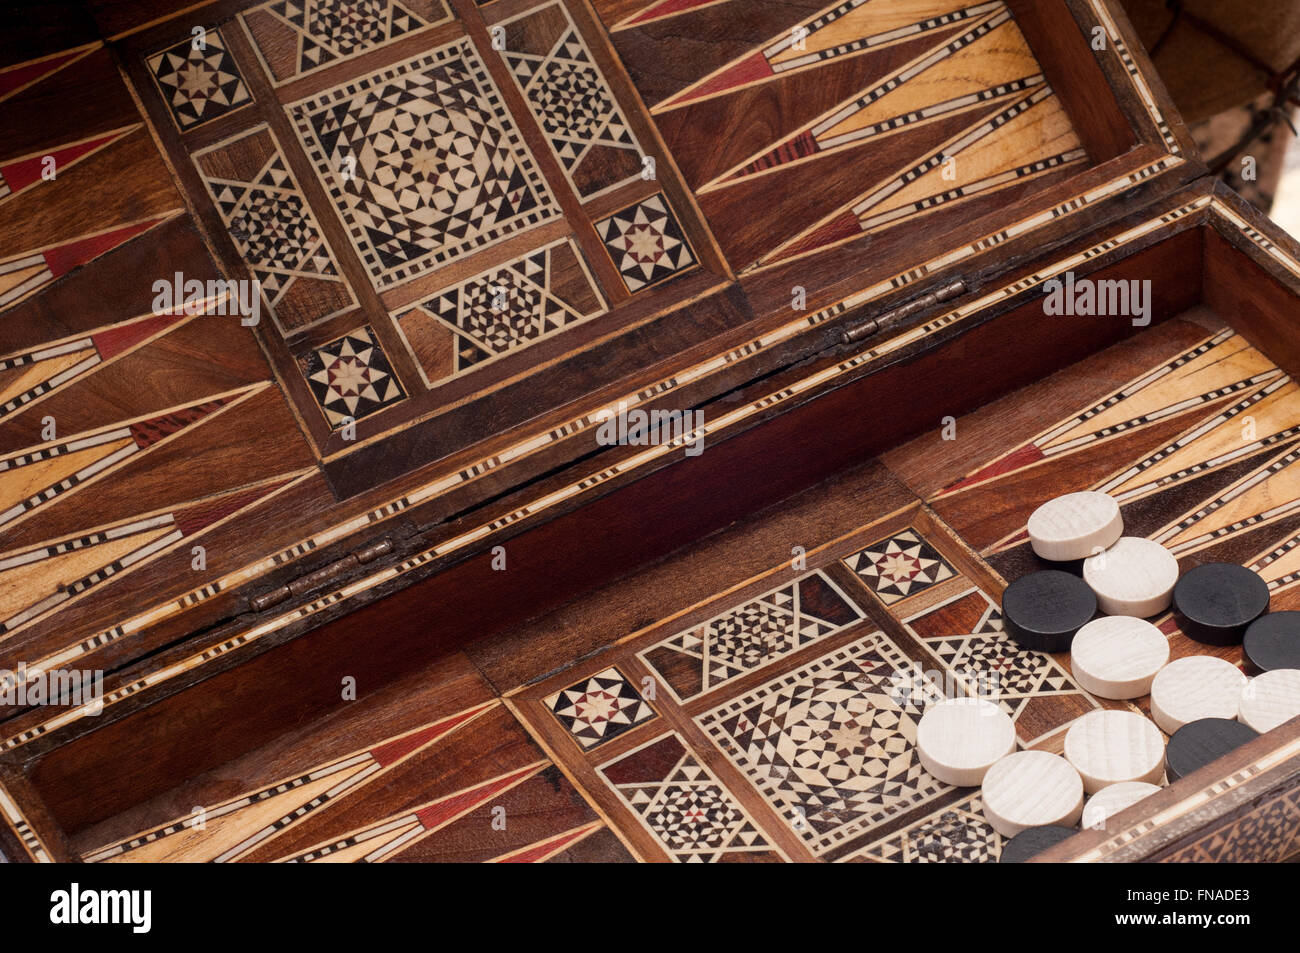 Bath Secondhand Stock Photos & Bath Secondhand Stock Images - Alamy